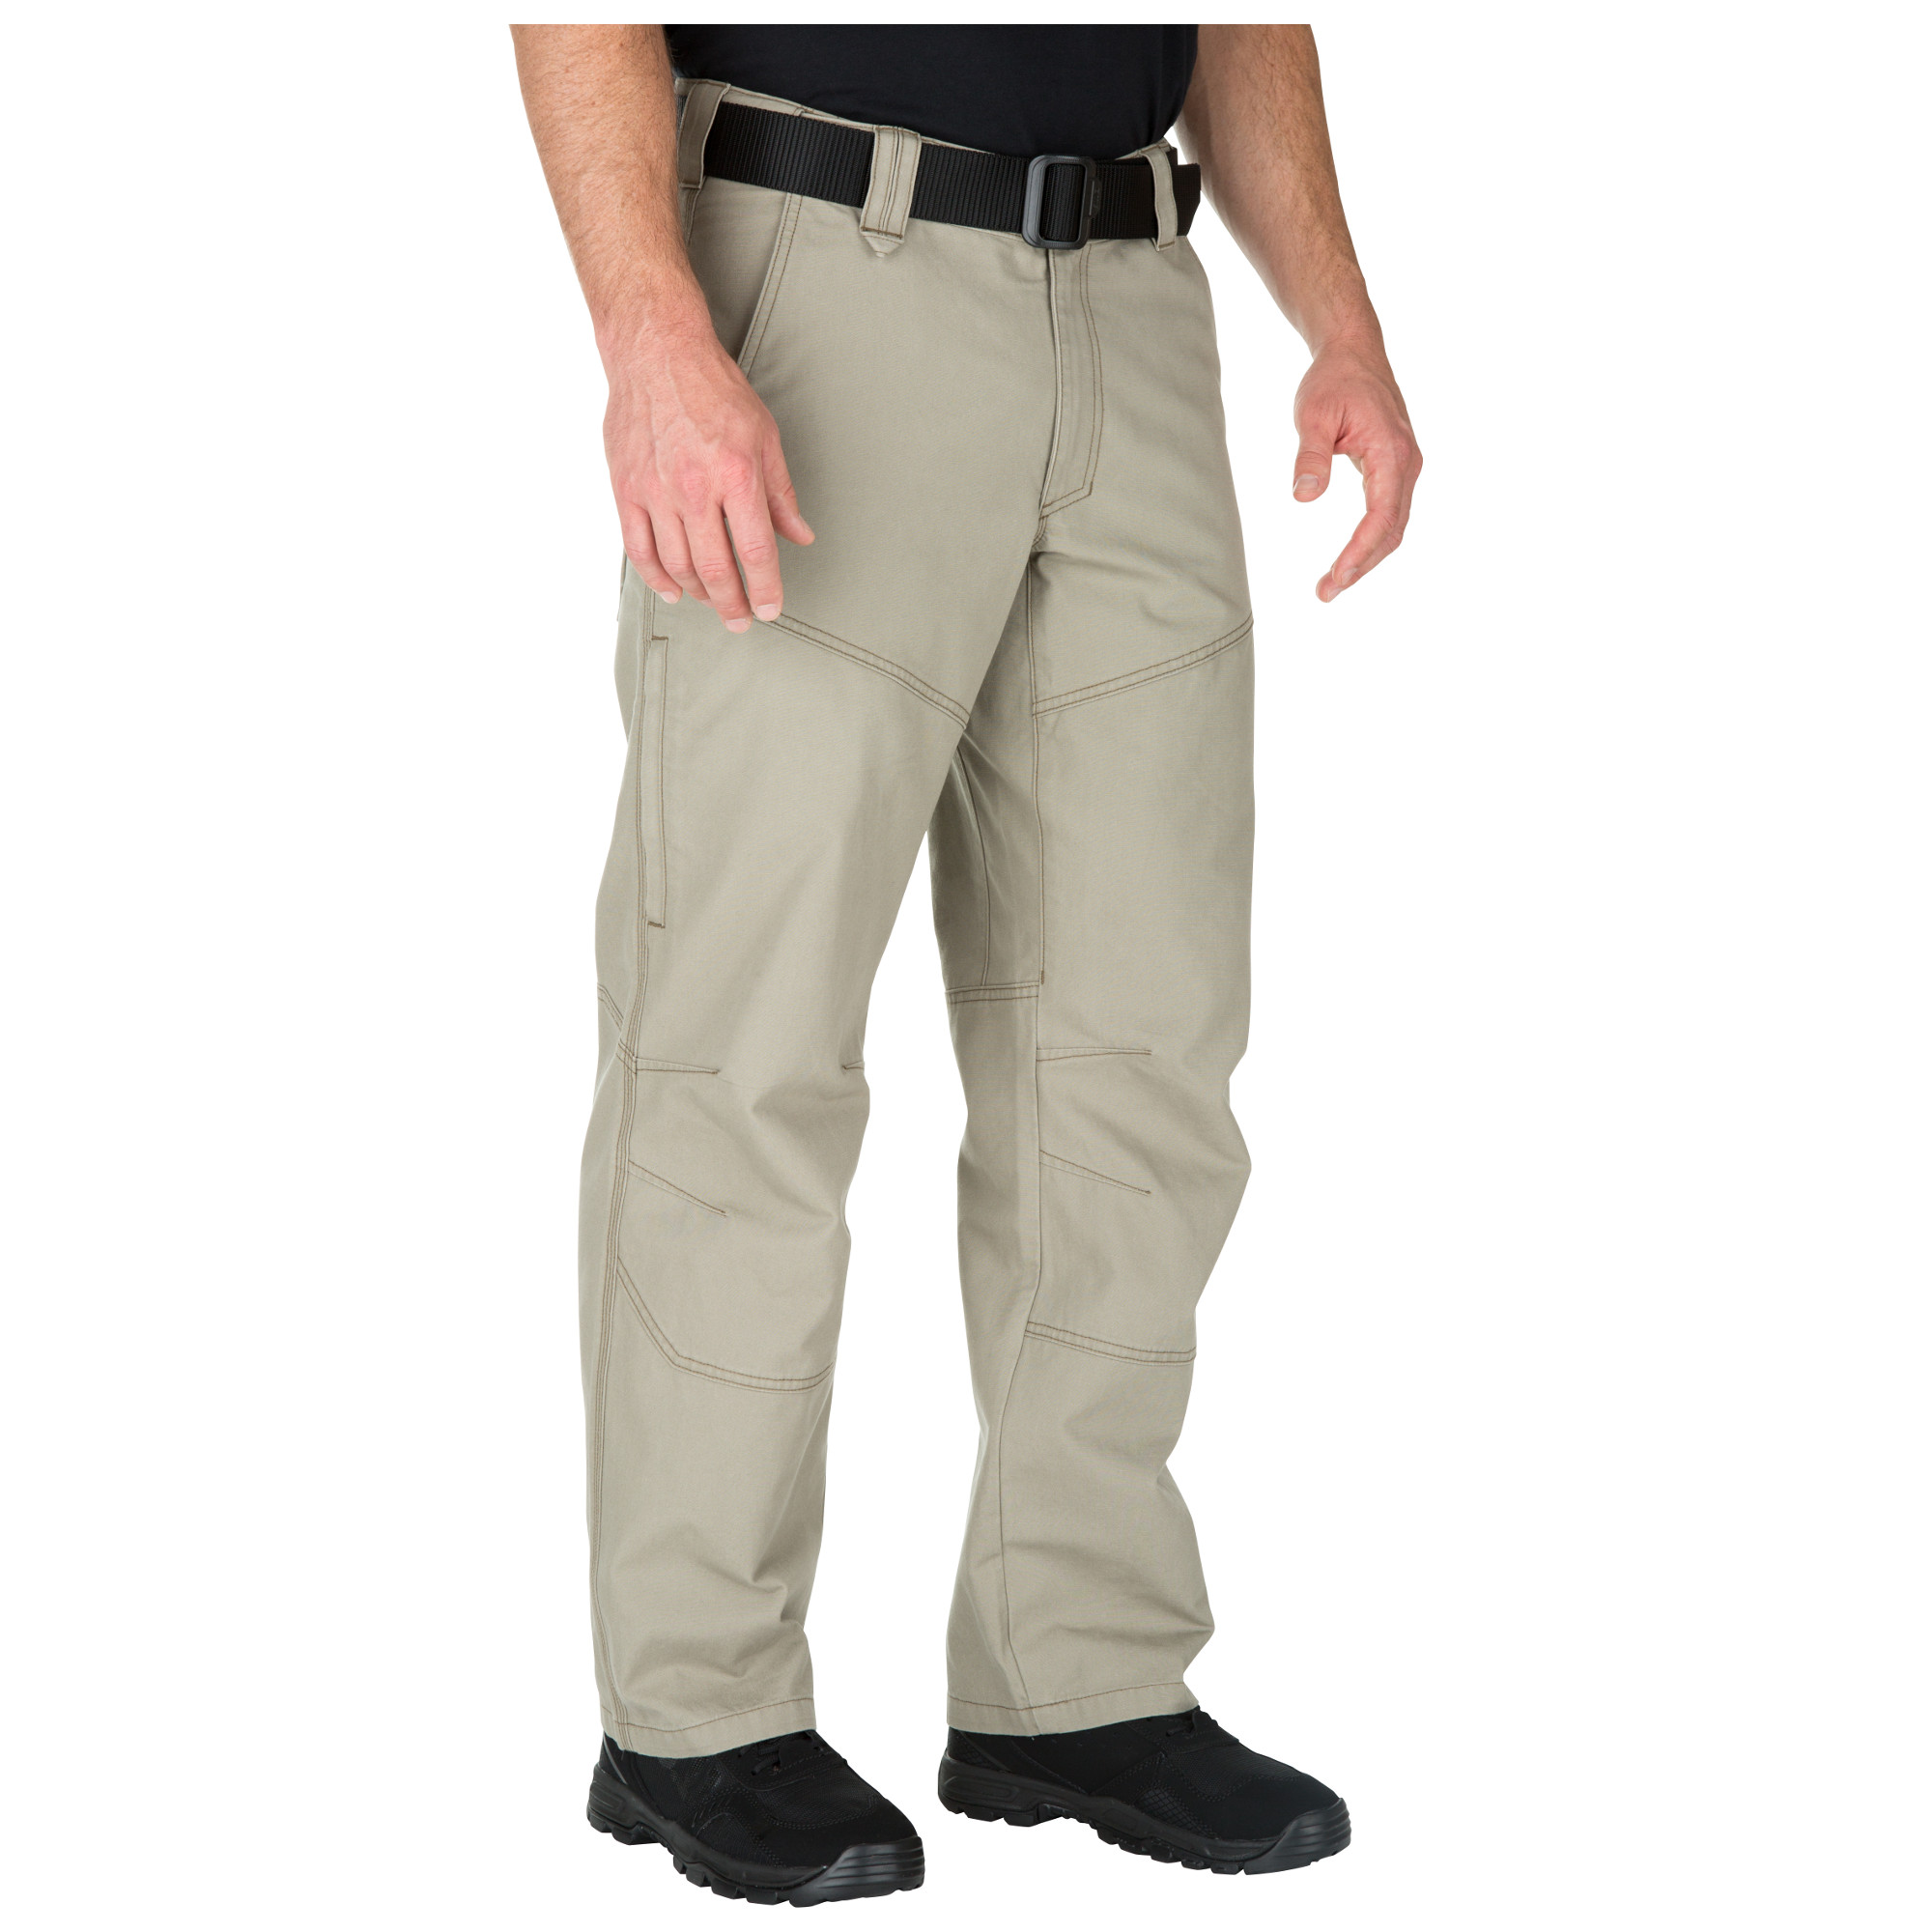 5.11 Tactical Men's Kodiak Pant 2.0 (Khaki/Tan)